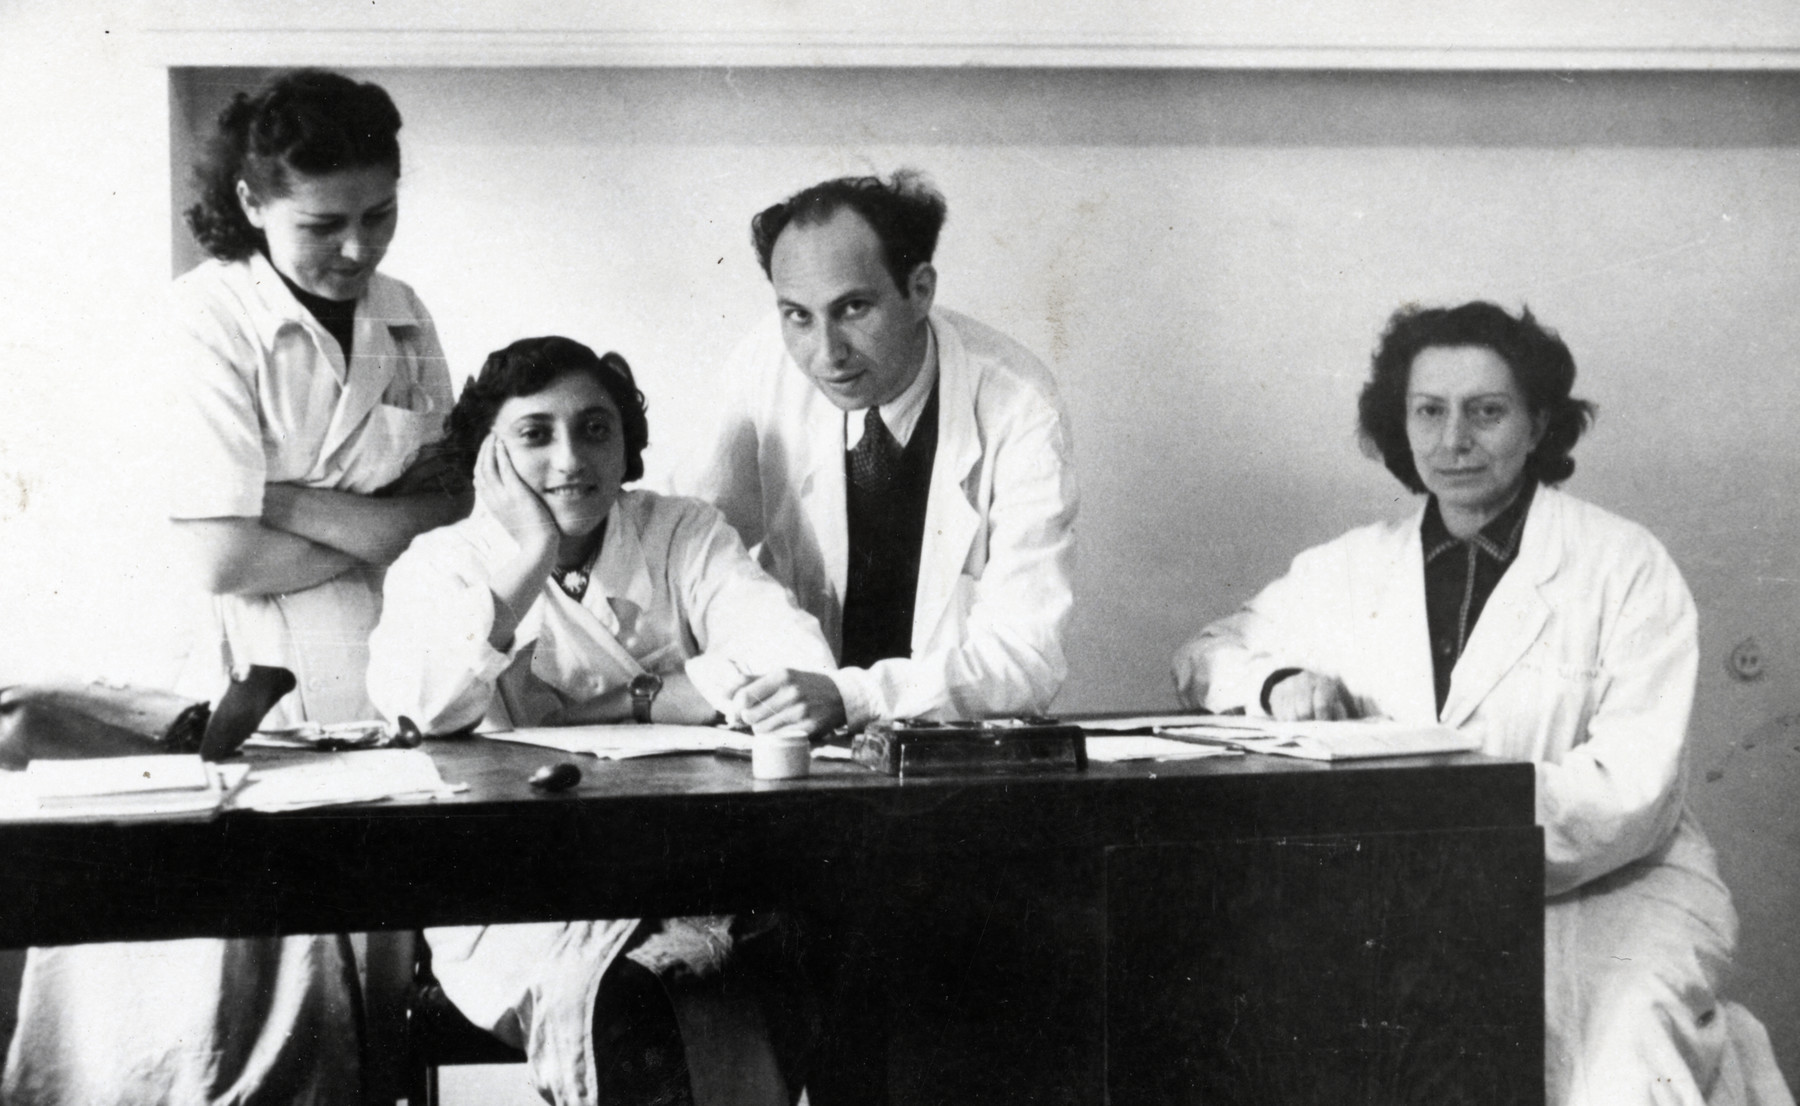 Group portrait of four students at the Bucharest Medical School.  Thea Kollenberg is pictured second from the left.